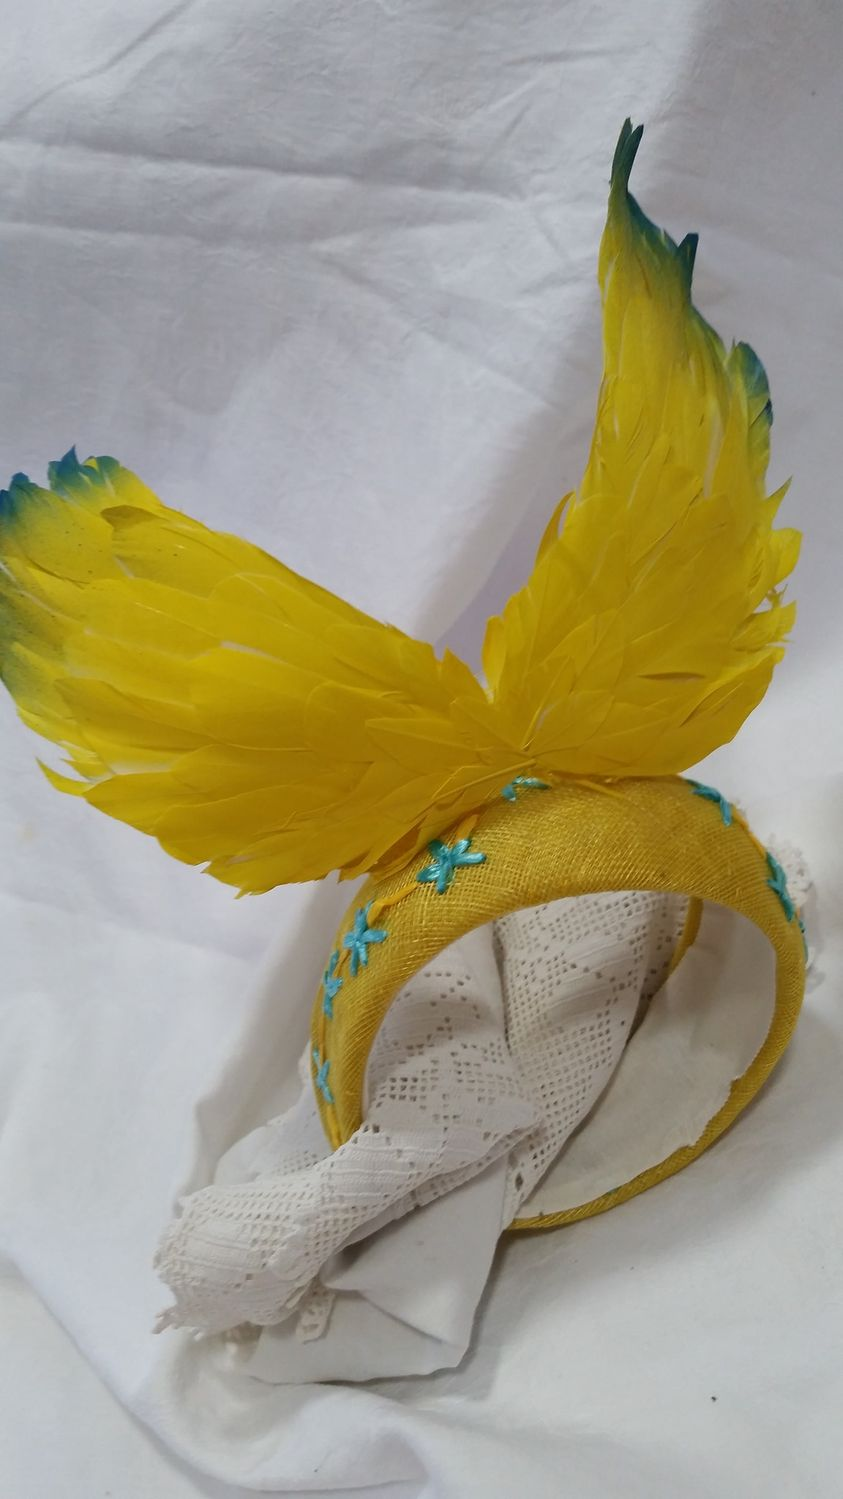 One of Hat & Crown Millinery's creations at the Brisbane Millinery Fair